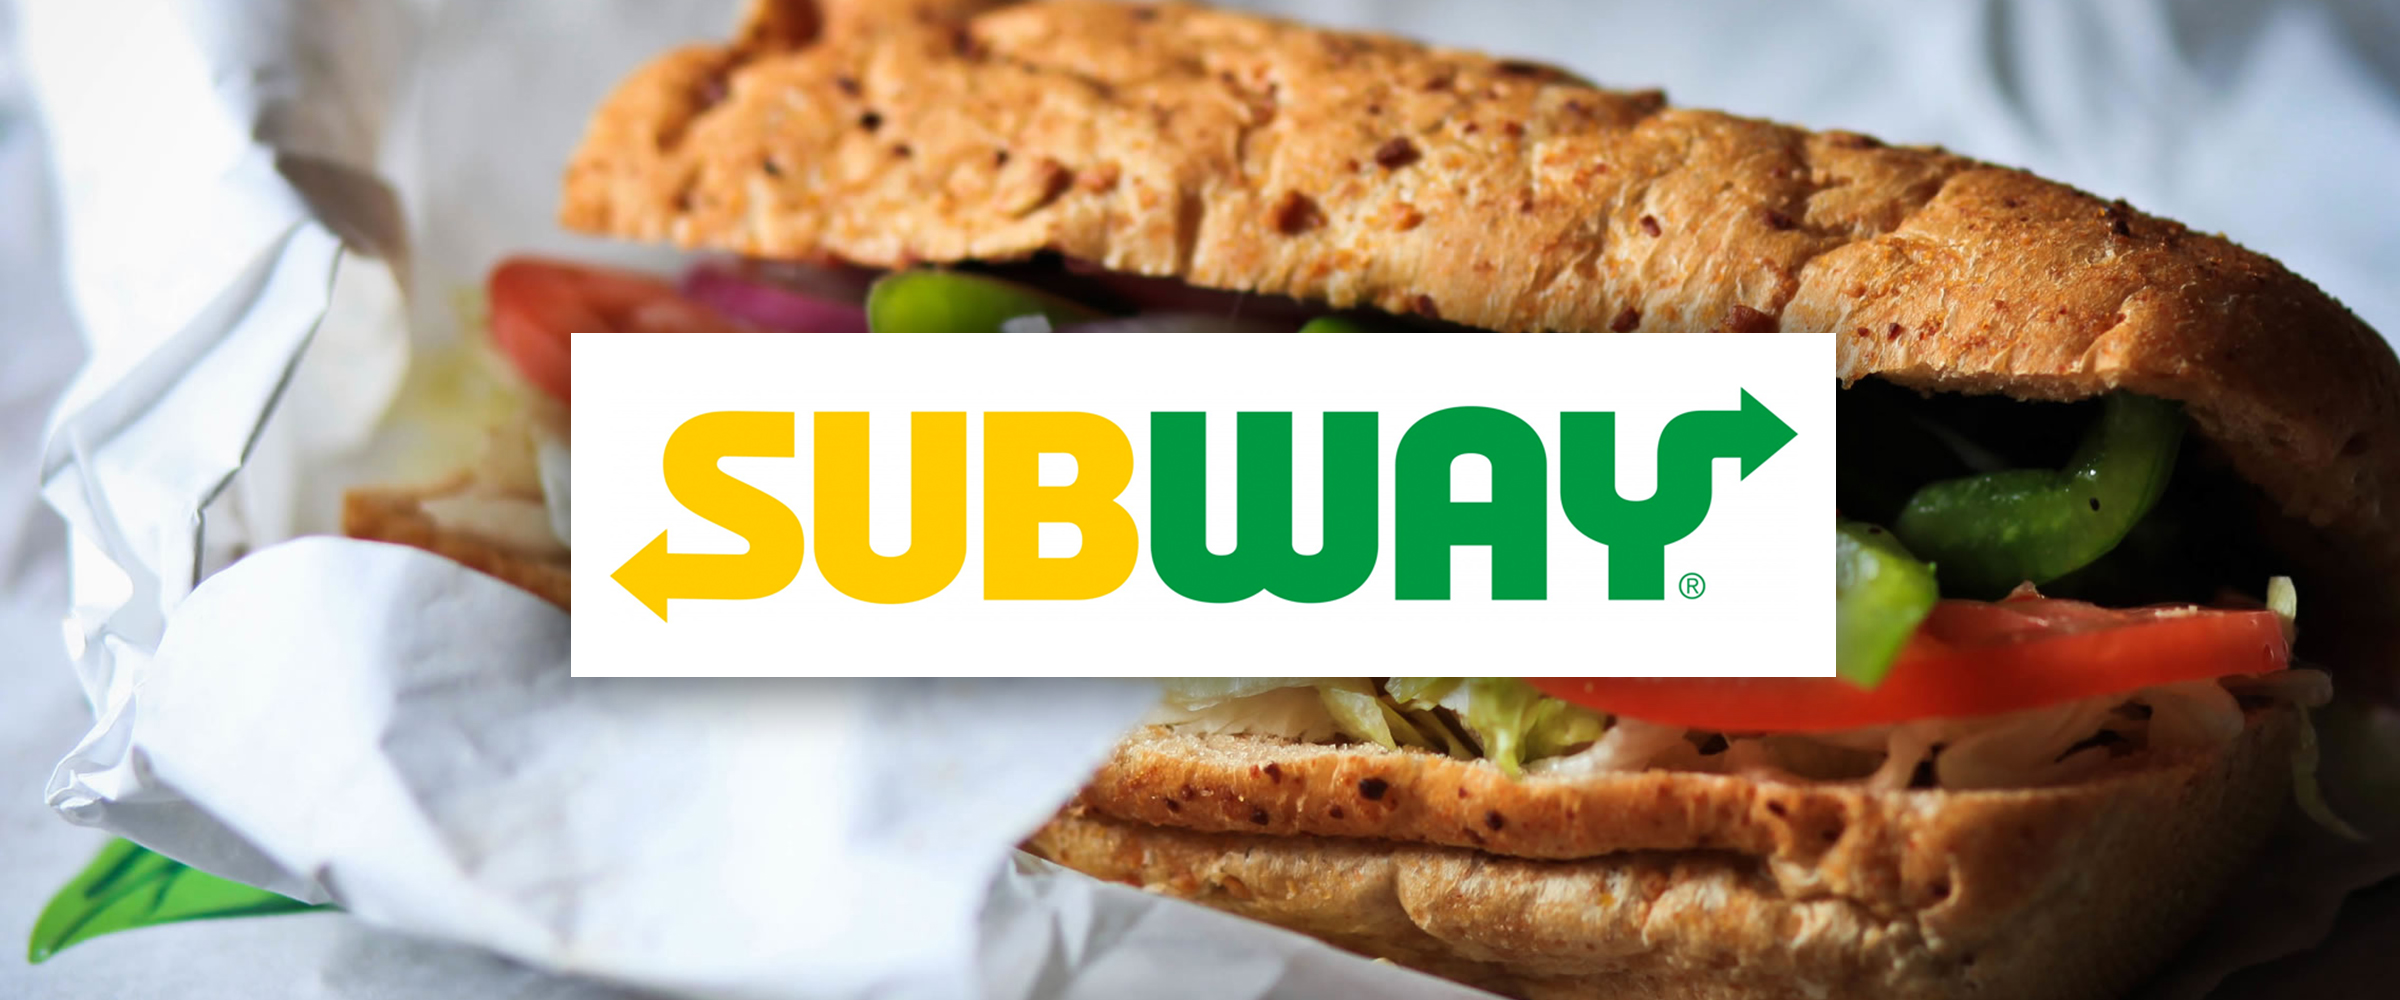 subway_header